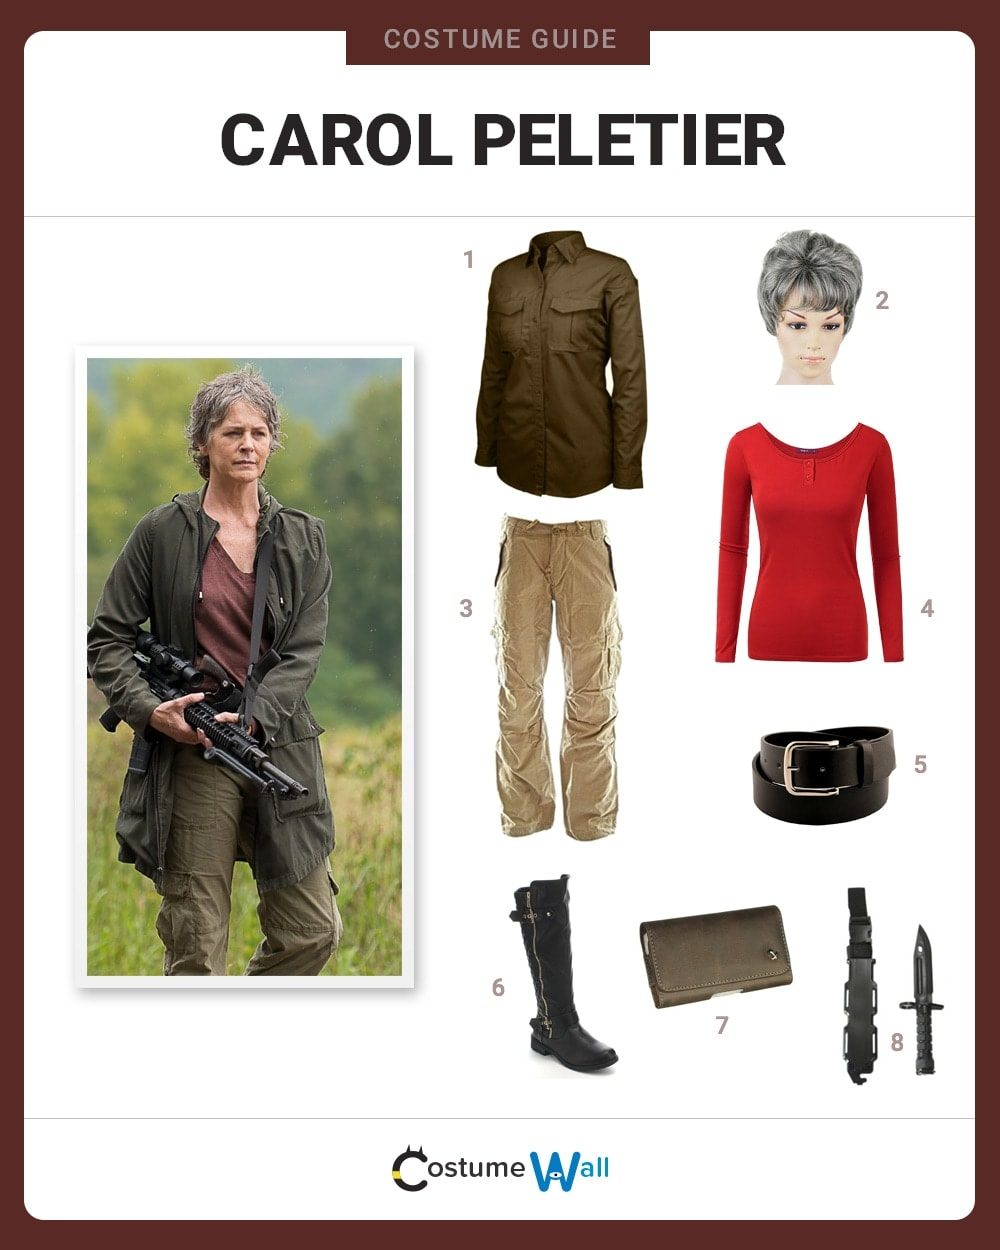 Carol Peletier Costume Guide